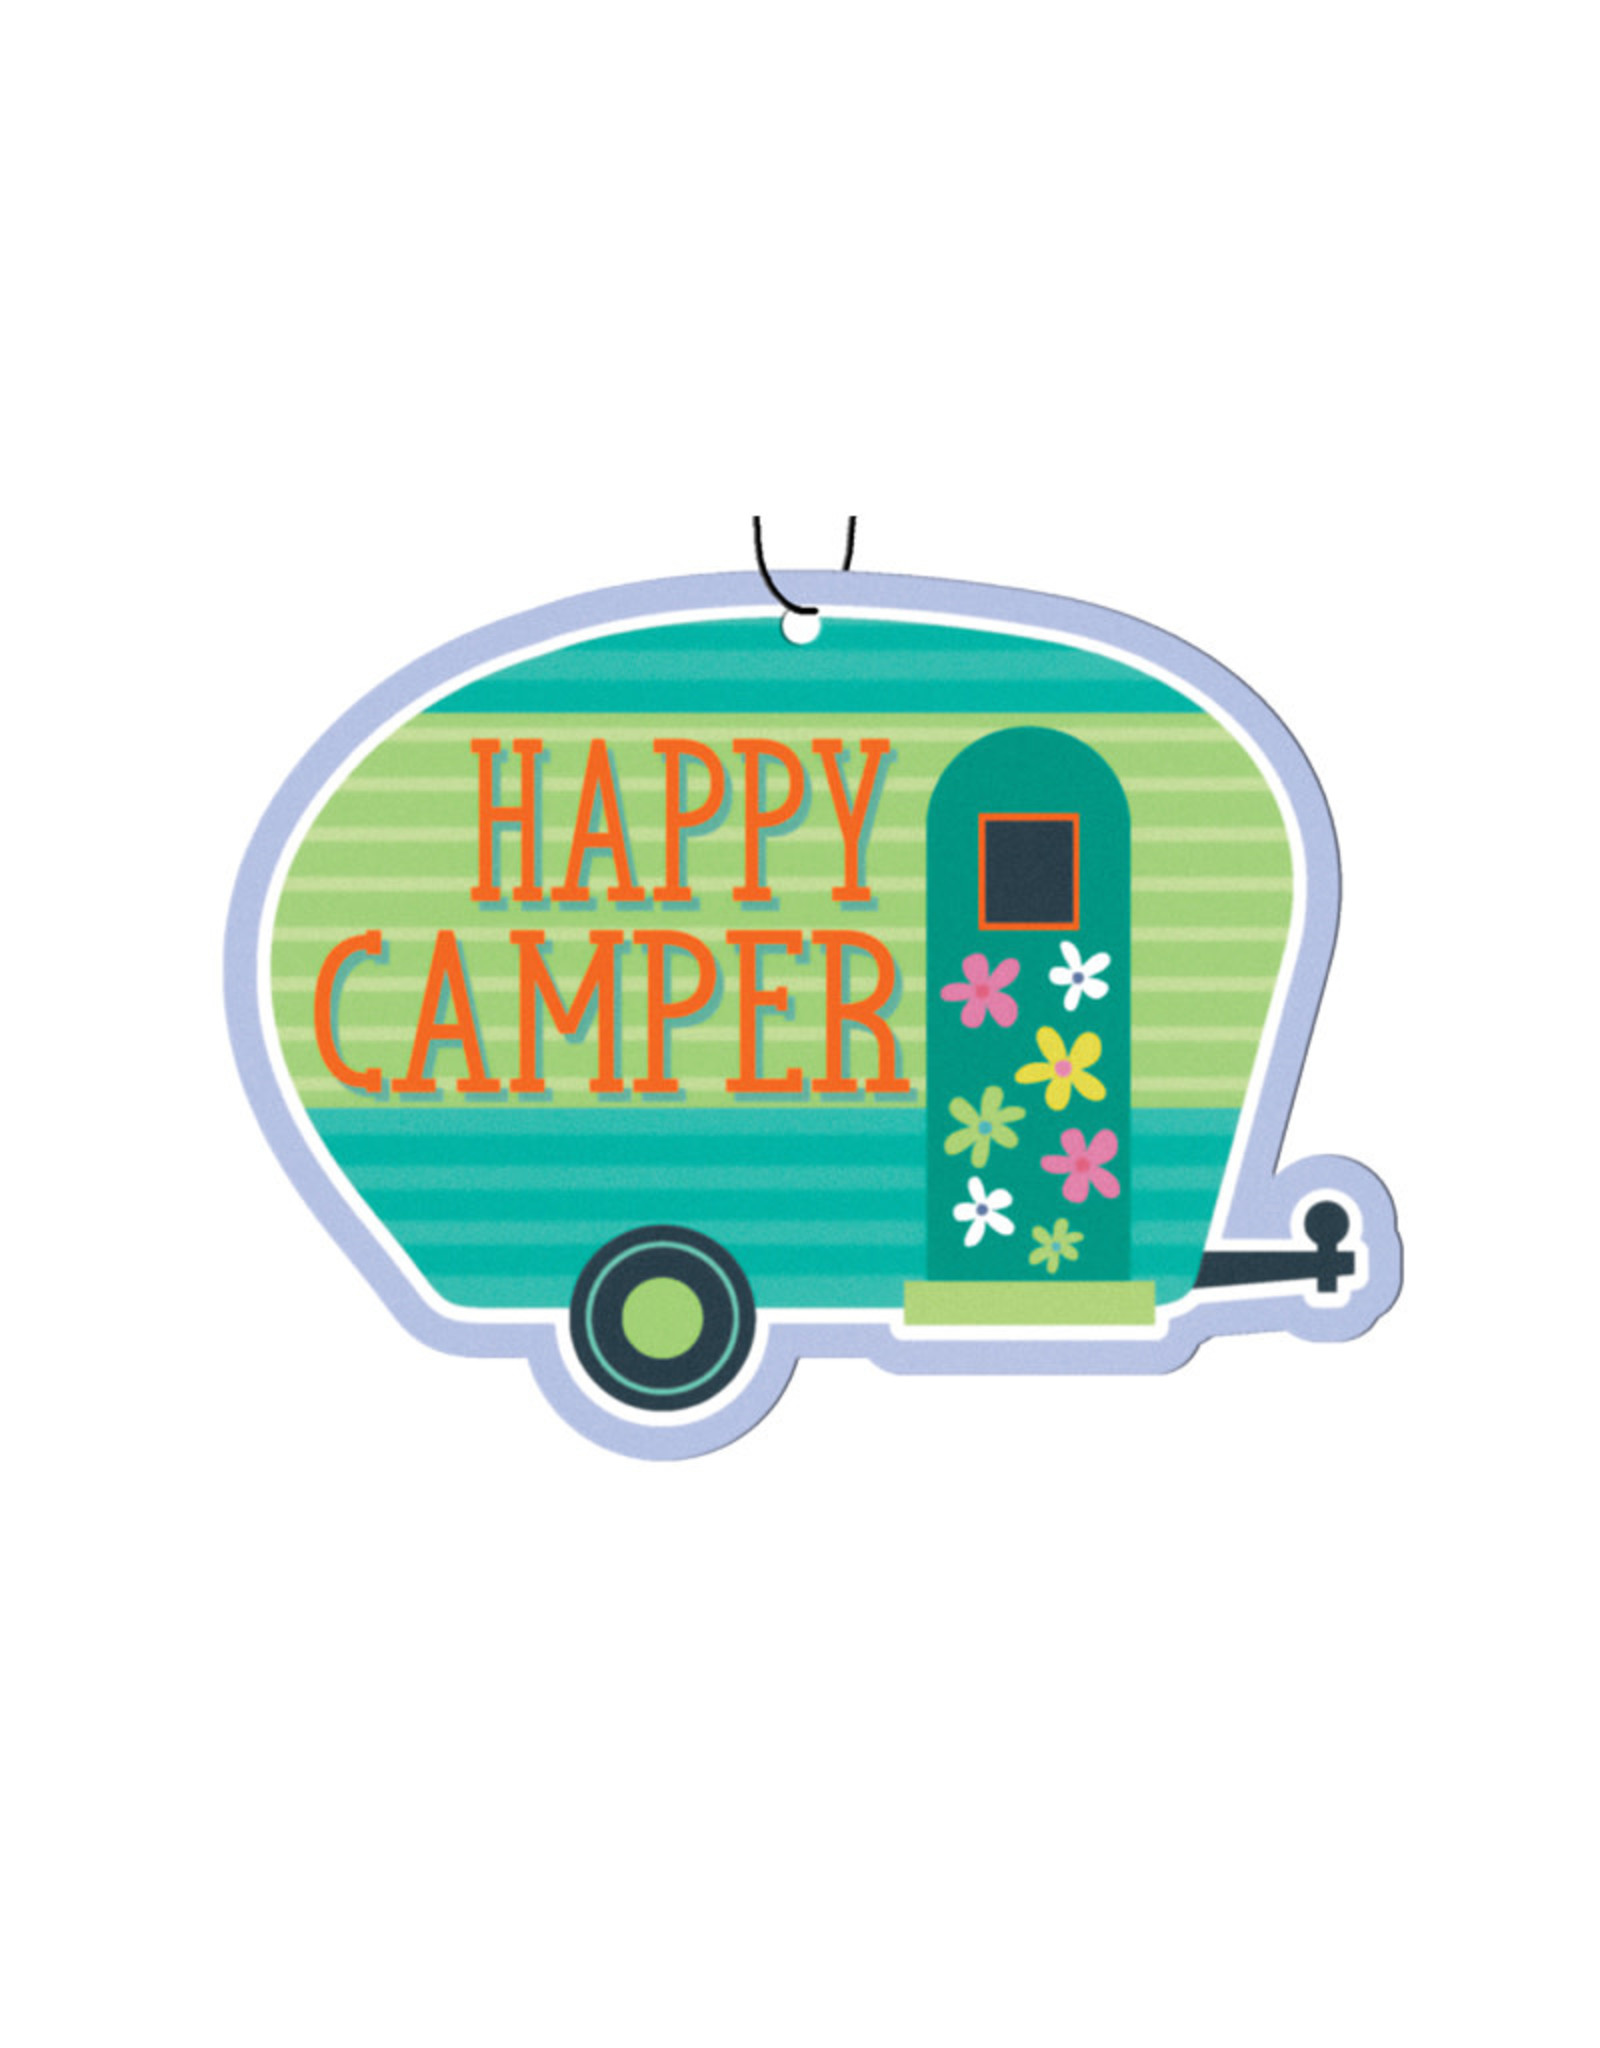 Happy Camper ( Pack of 3 Air Fresheners )